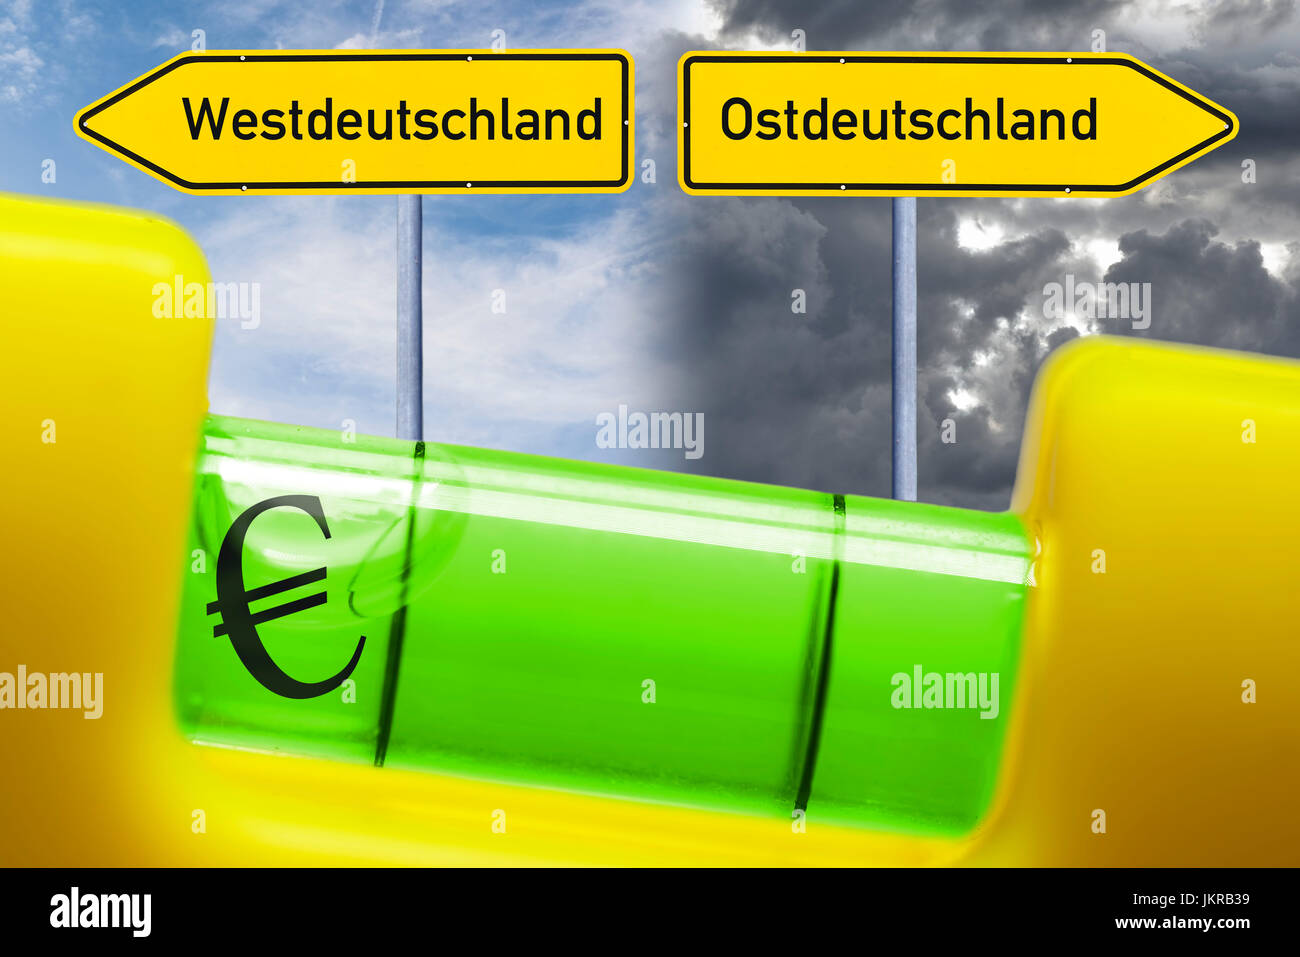 Spirit level in the imbalance, unequal salaries in west country and Eastern Germany, Wasserwaage im Ungleichgewicht, - Stock Image